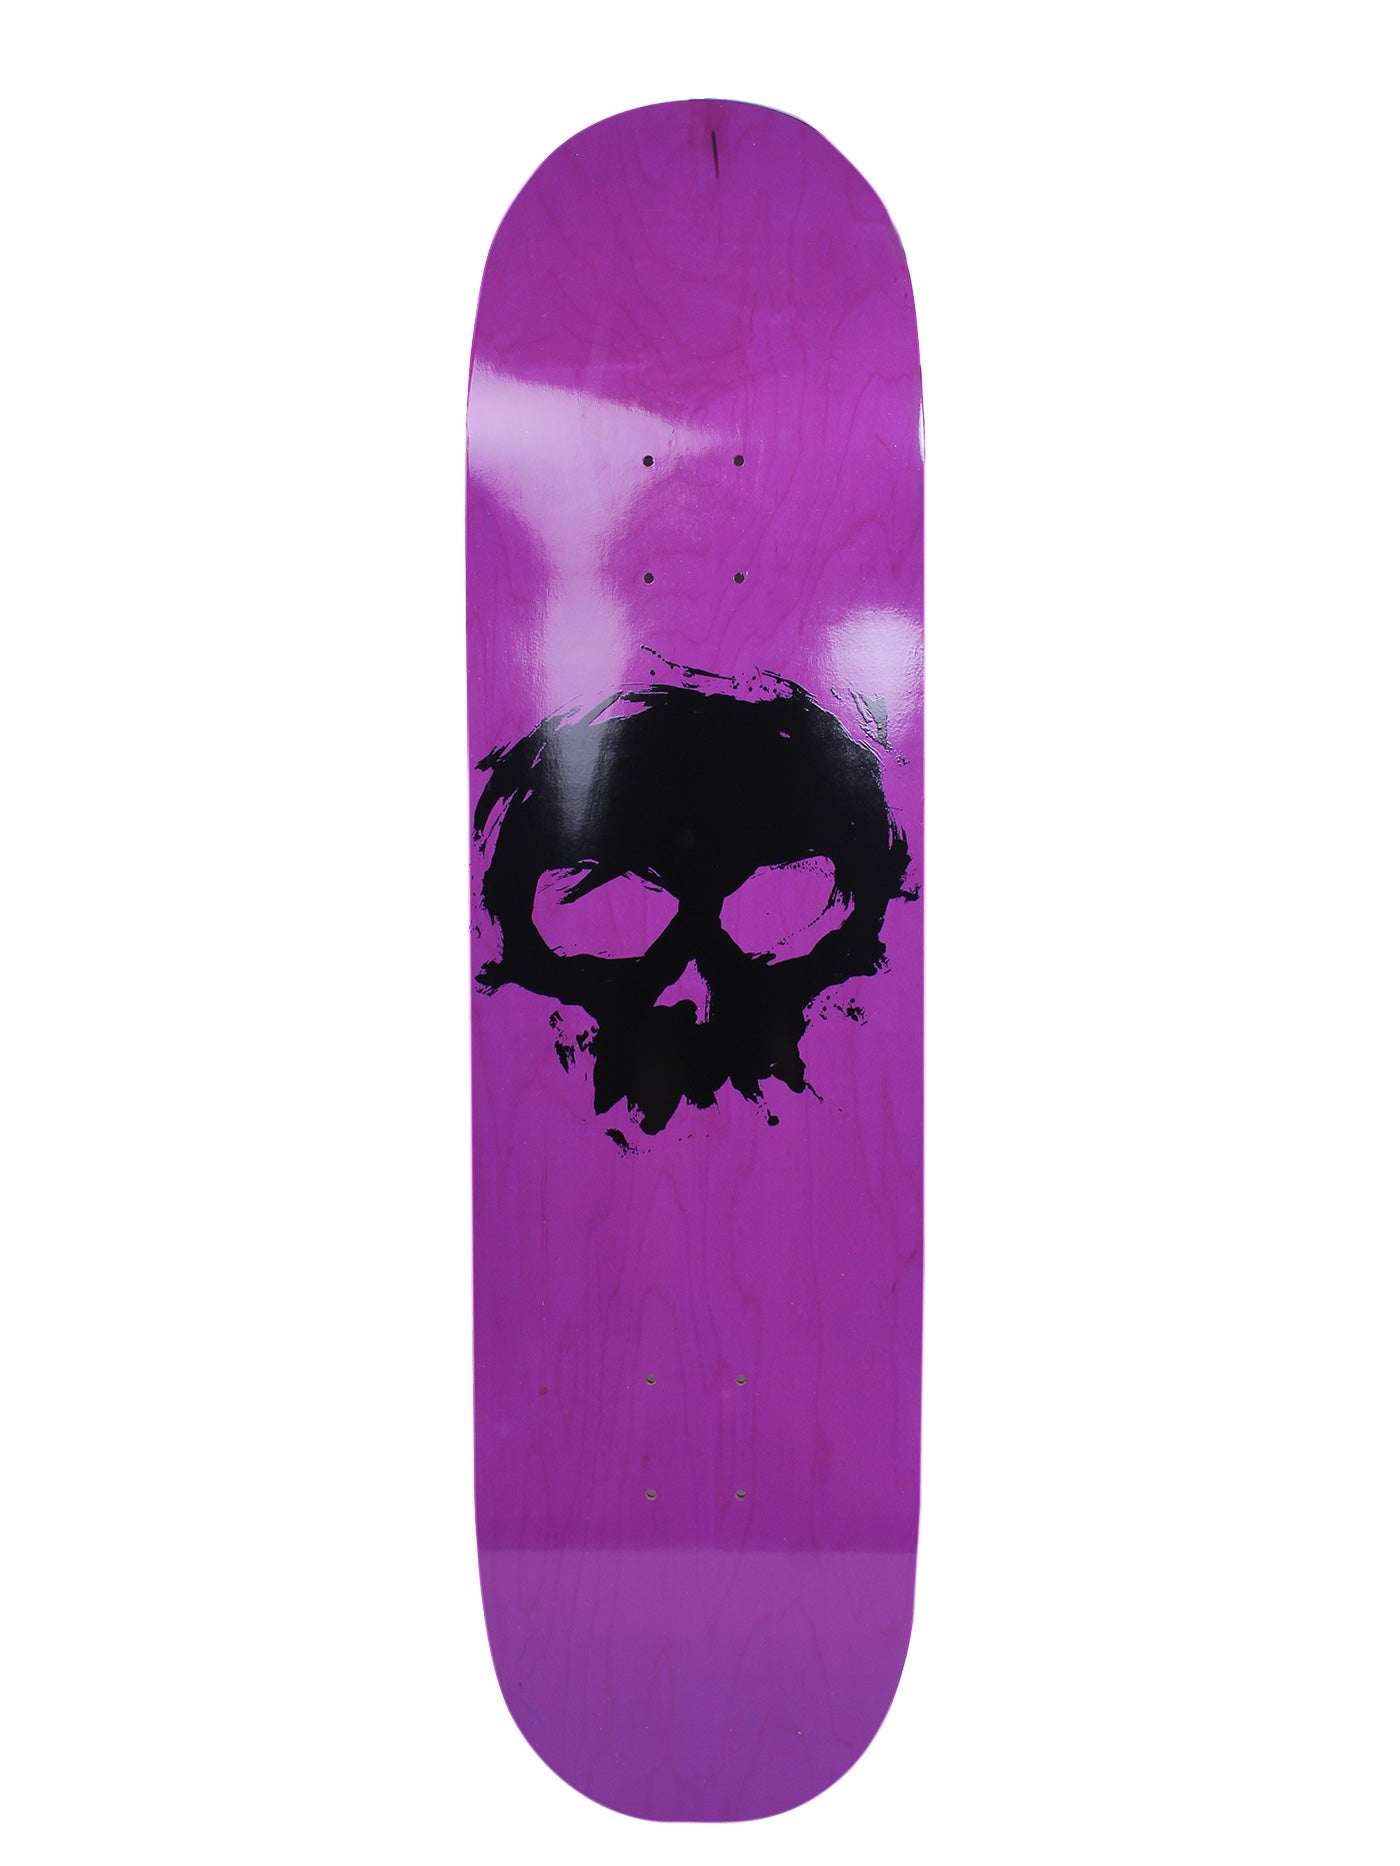 Price Point Single Blood Skull Black Trans/Lavender 8.5''